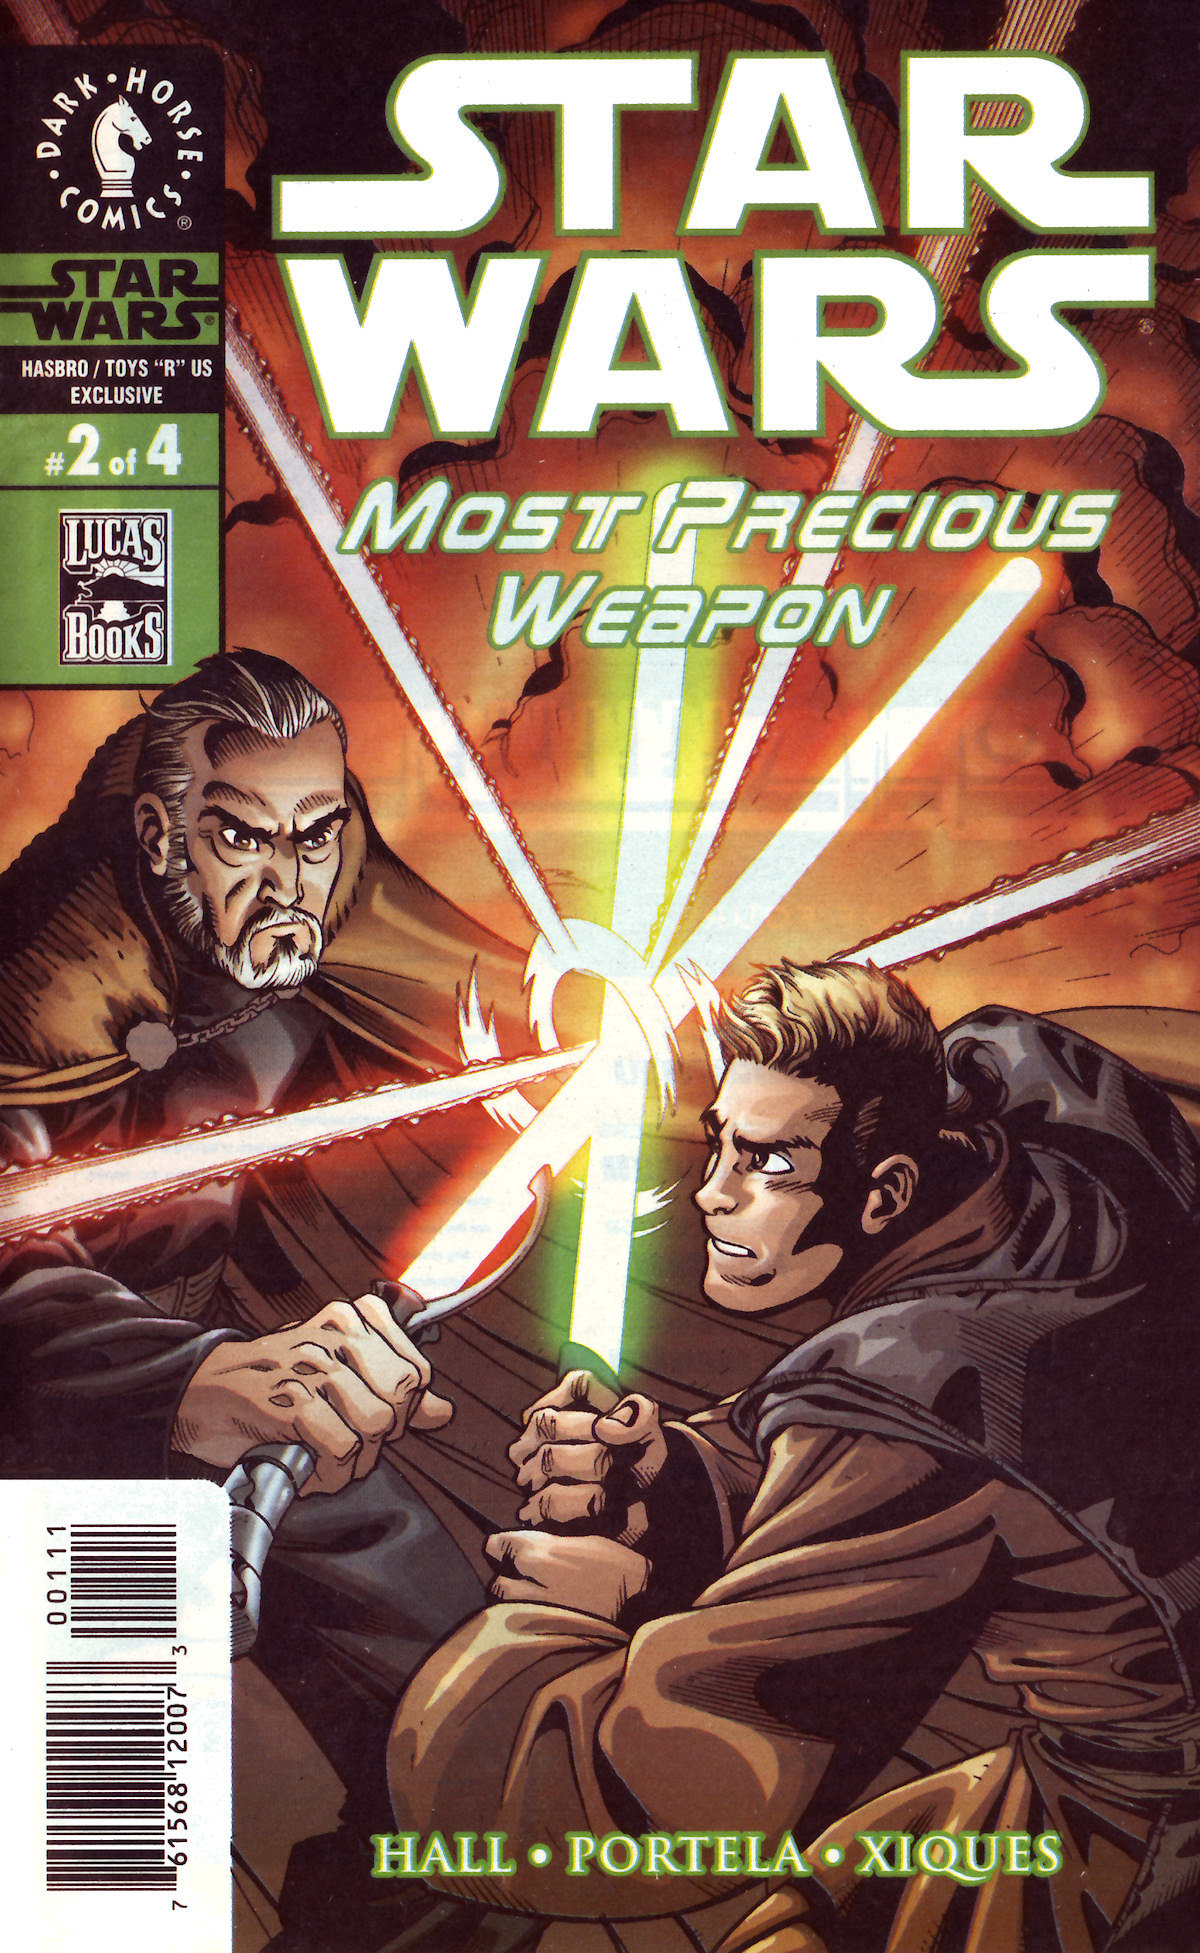 Star Wars: Most Precious Weapon